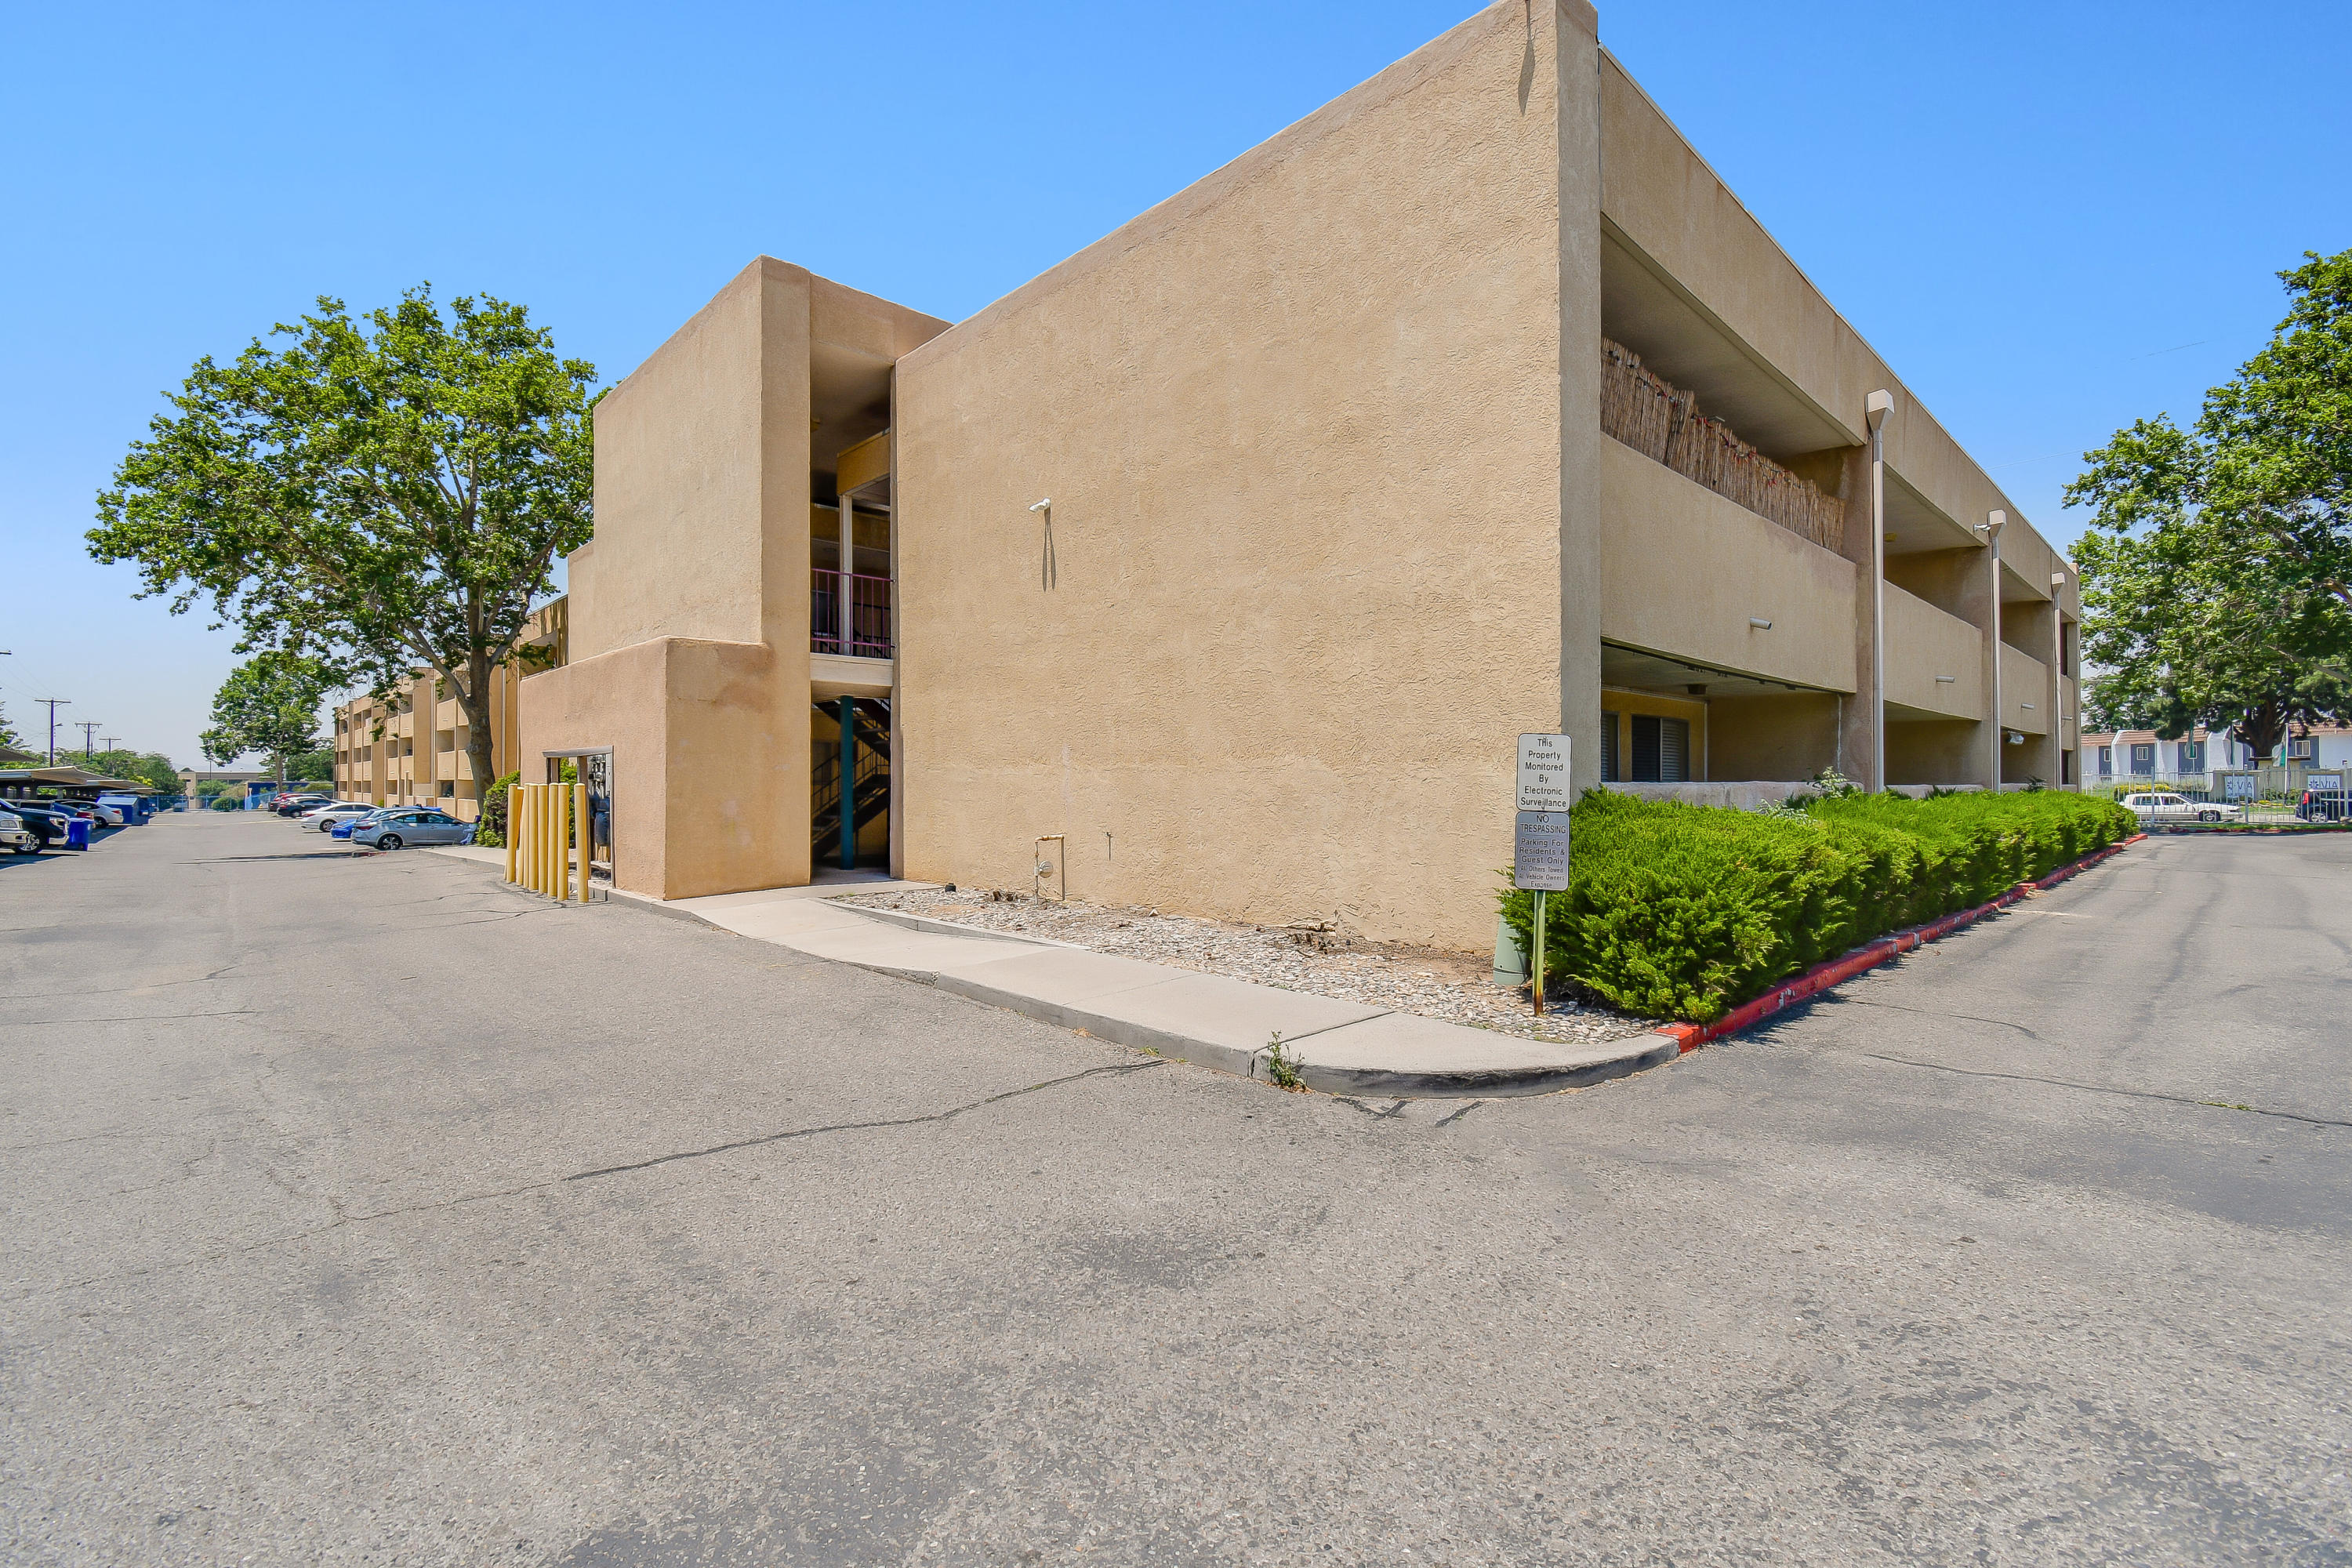 Nicely renovated 1 Bedroom, 1 Bath in a NE Heights gated community! Beautiful vinyl flooring throughout. Stainless steel refrigerator, stove and dishwasher. Property taxes are included in HOA Fees. Enjoy the outdoor pool available for residents & their guests. Laundry room & small gym near pool. Come take a look for yourself & make this condo yours today!!